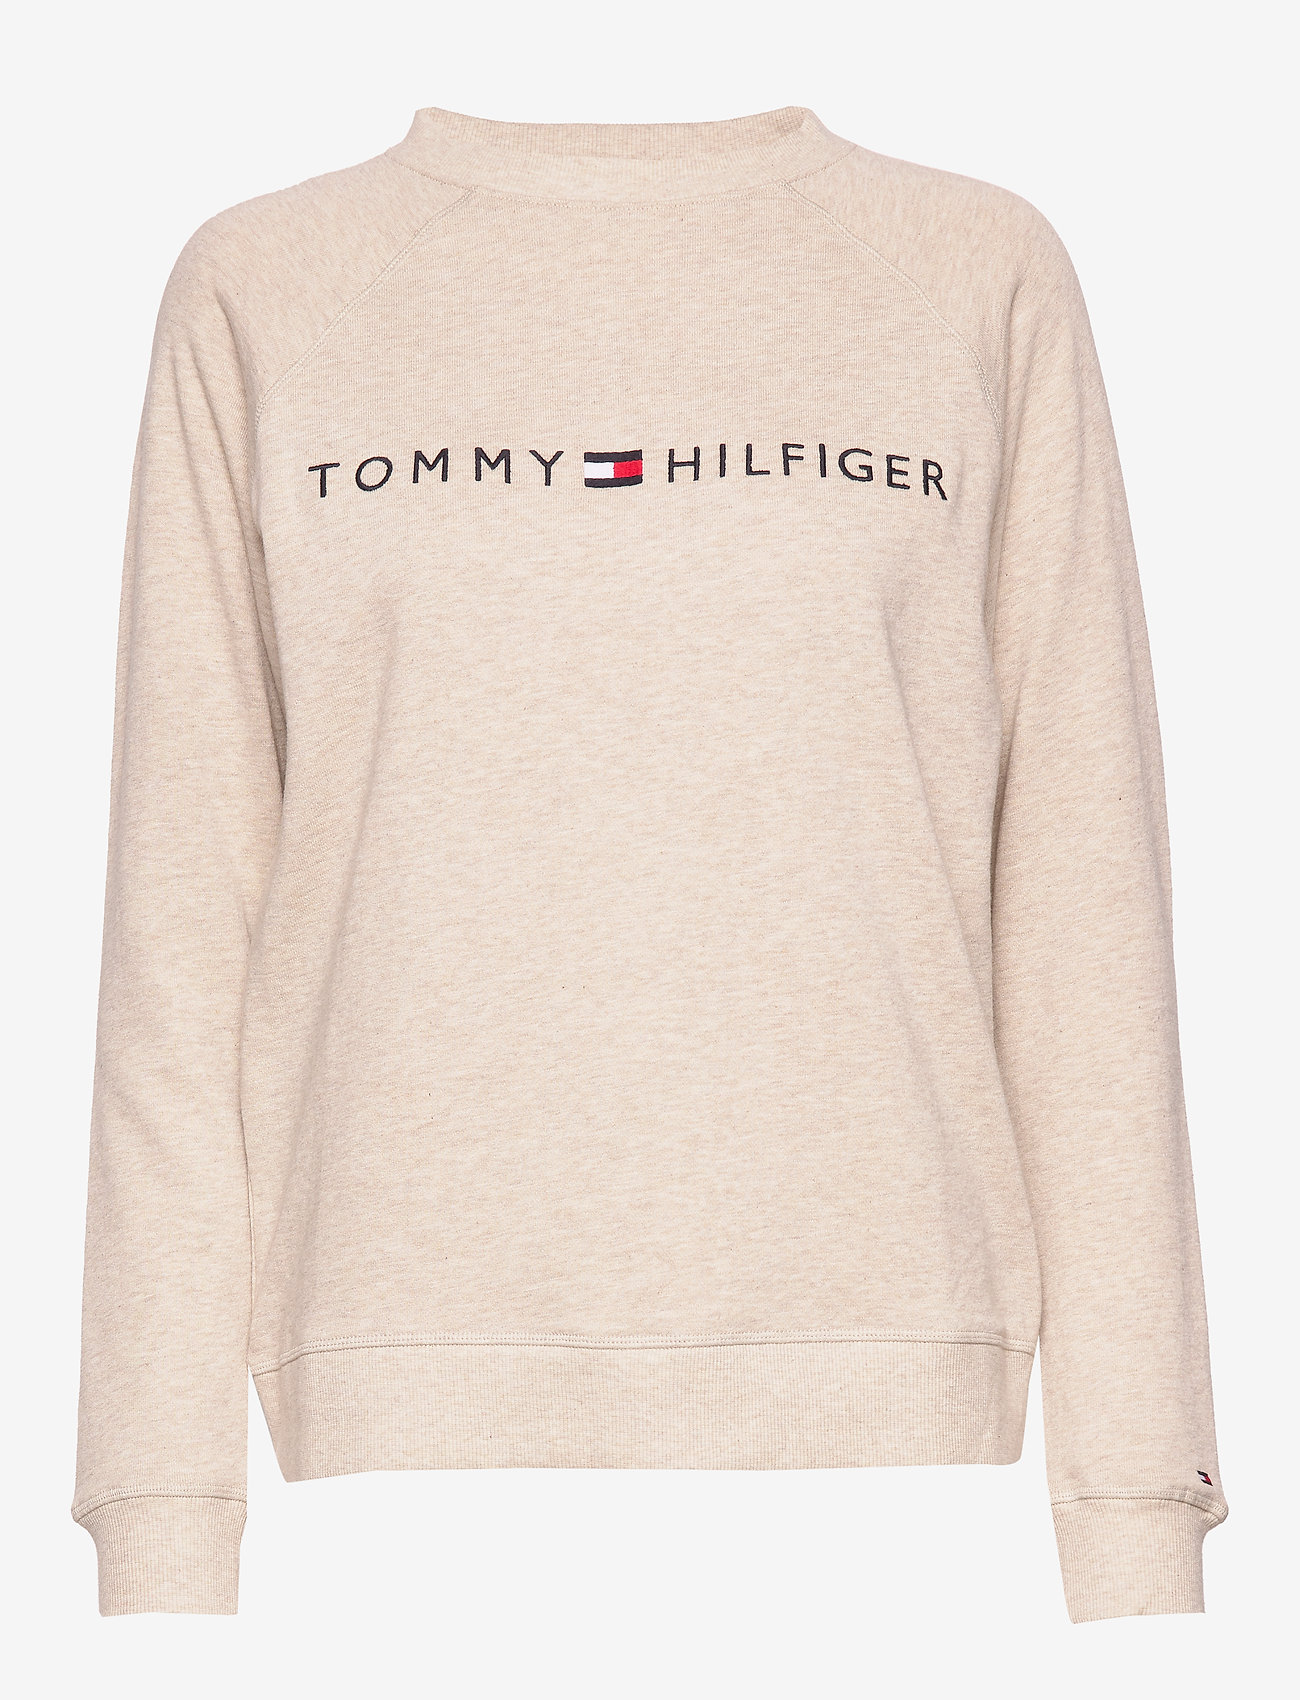 Tommy Hilfiger - CN TRACK TOP LS - oatmeal heather - 0